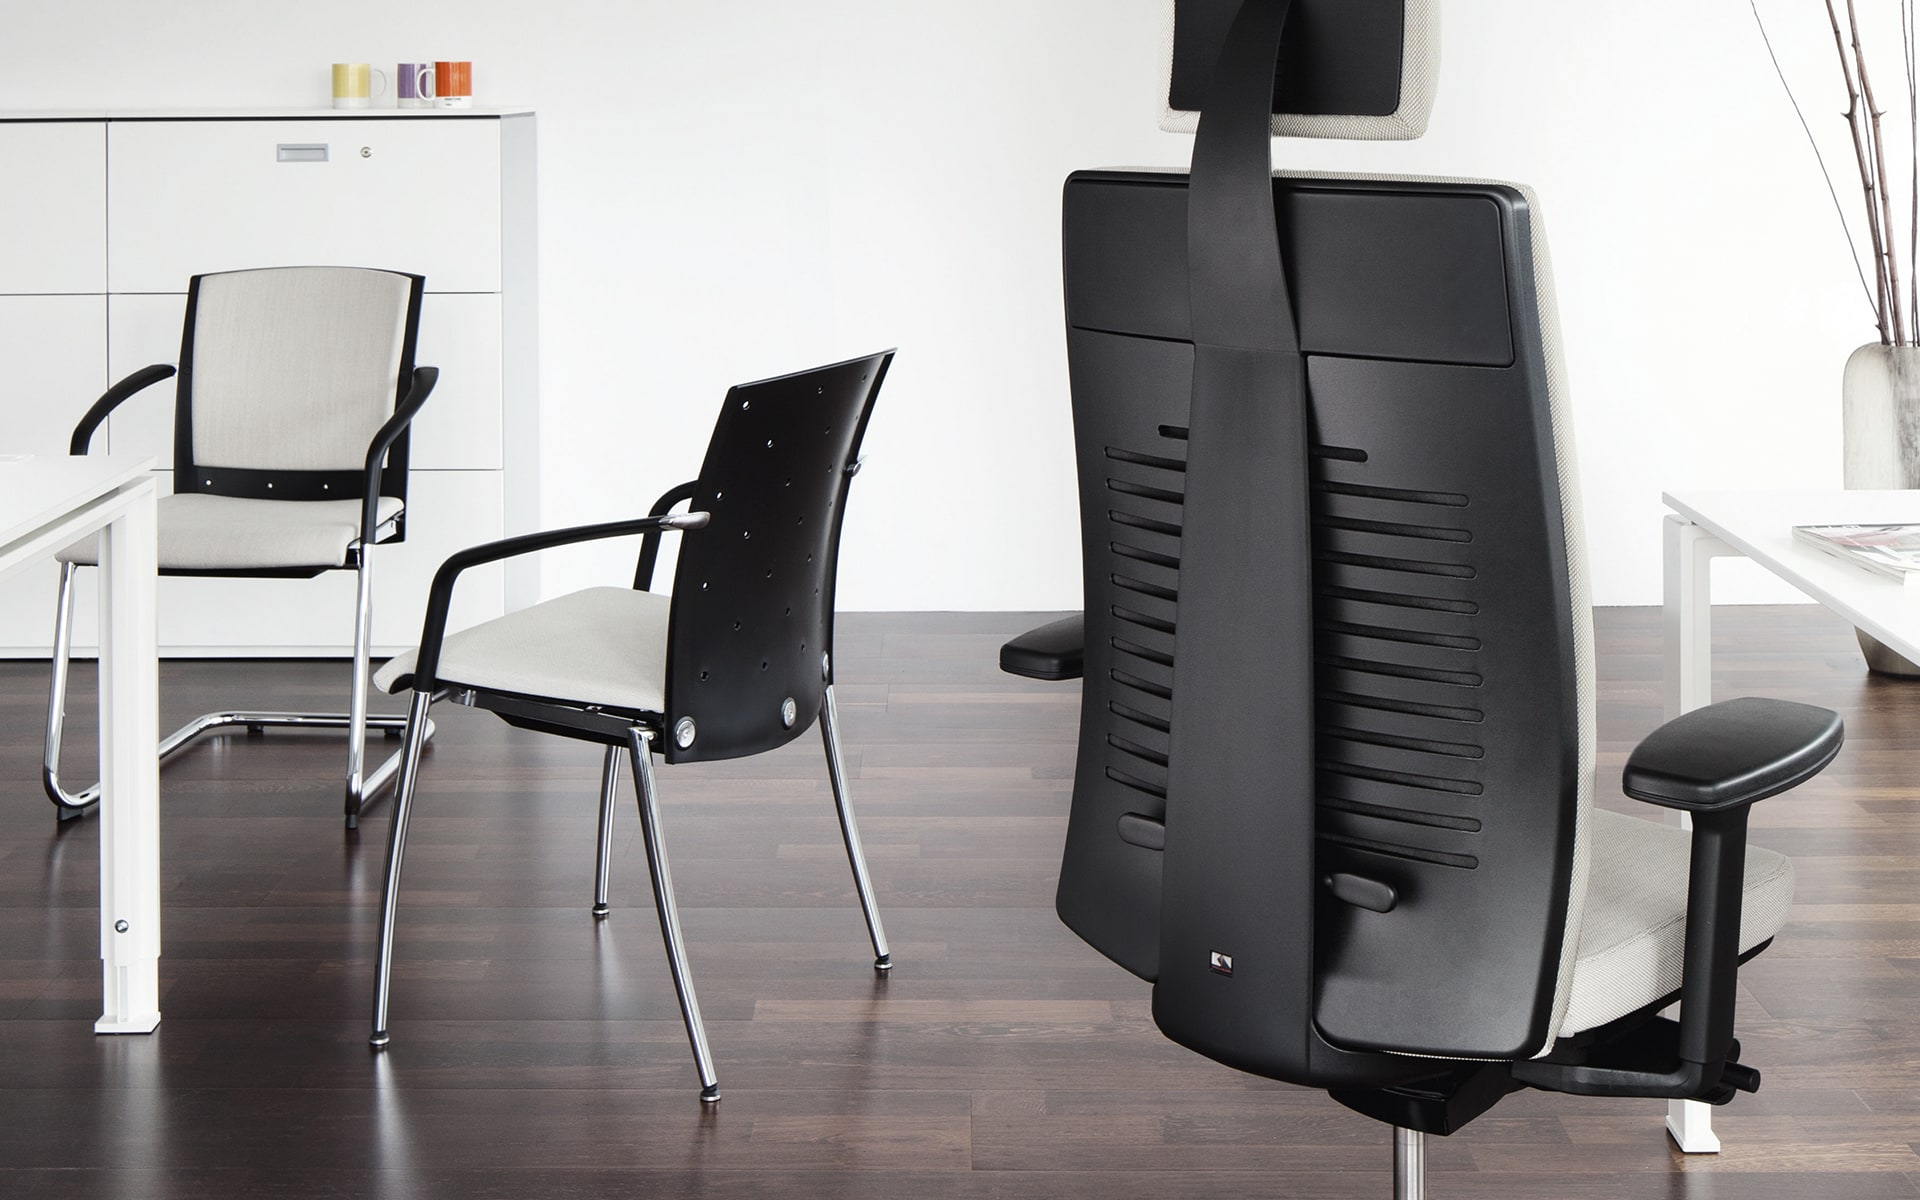 Various models of the König + Neurath Tensa office chair family by ITO Design at minimalist workplace